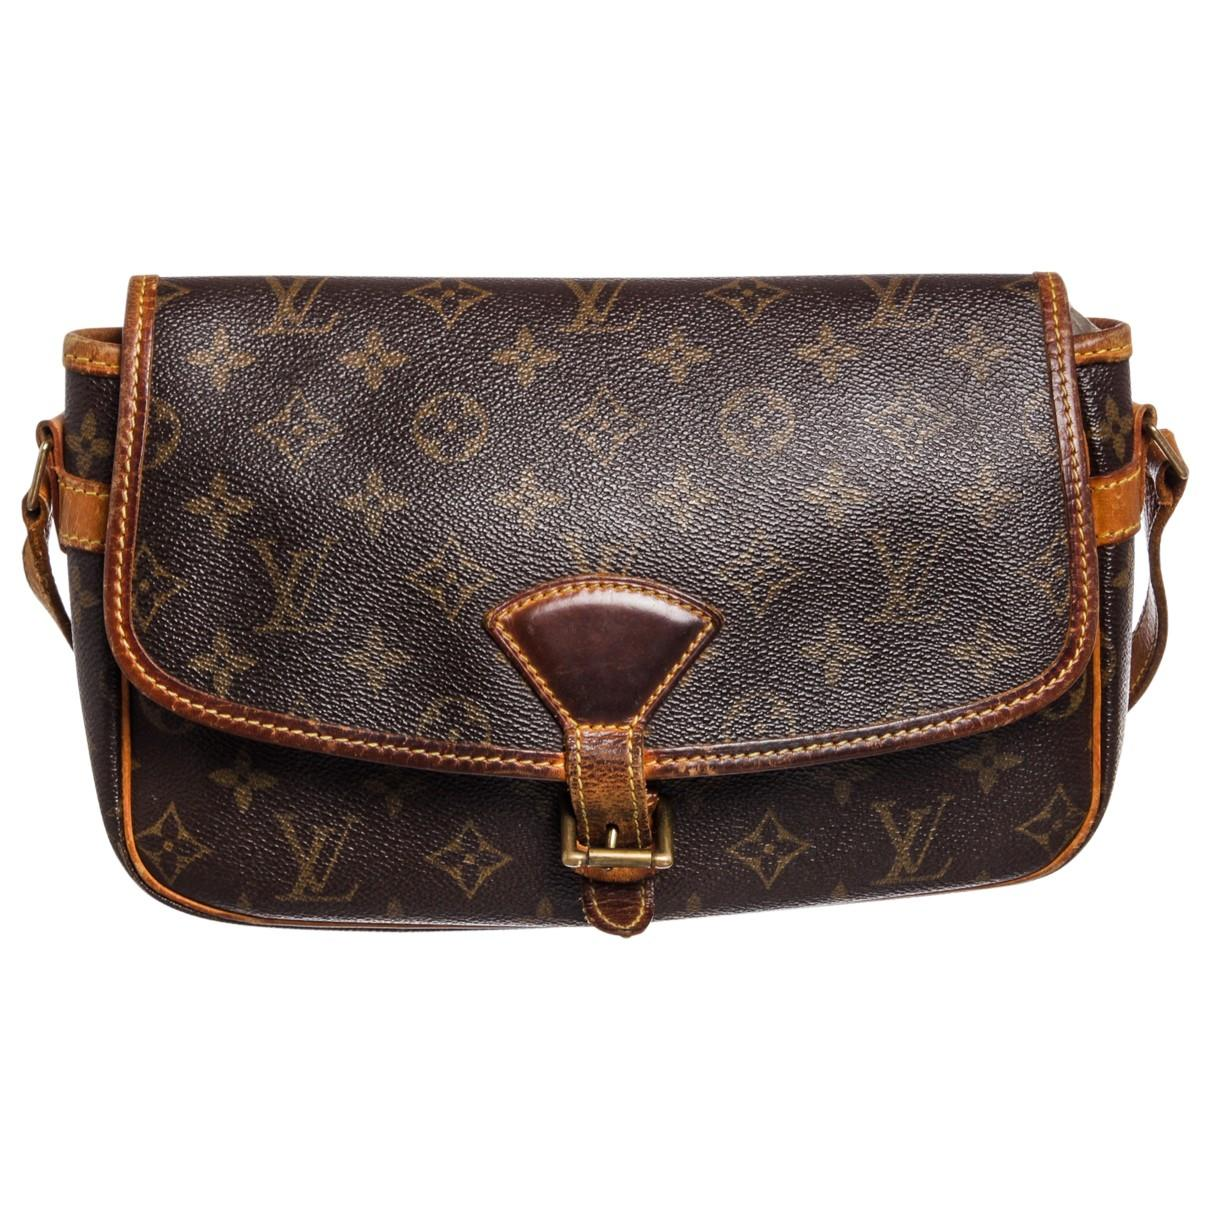 ba37c2aaa963 Louis Vuitton Pre-owned Sologne Leather Crossbody Bag in Brown - Lyst